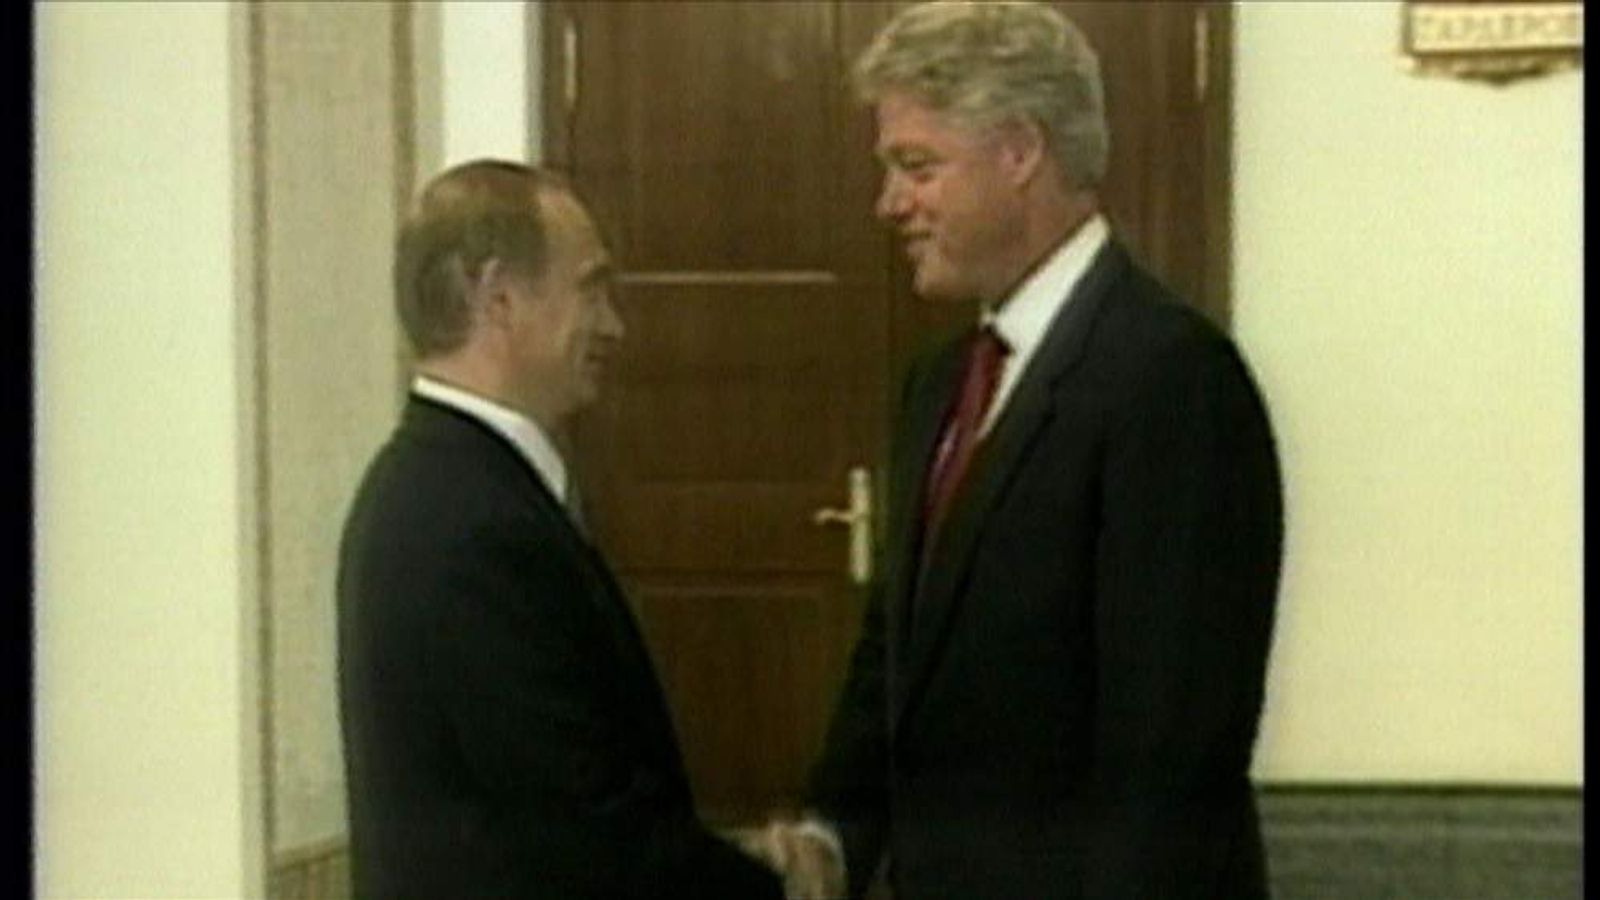 Presidents Putin and Clinton